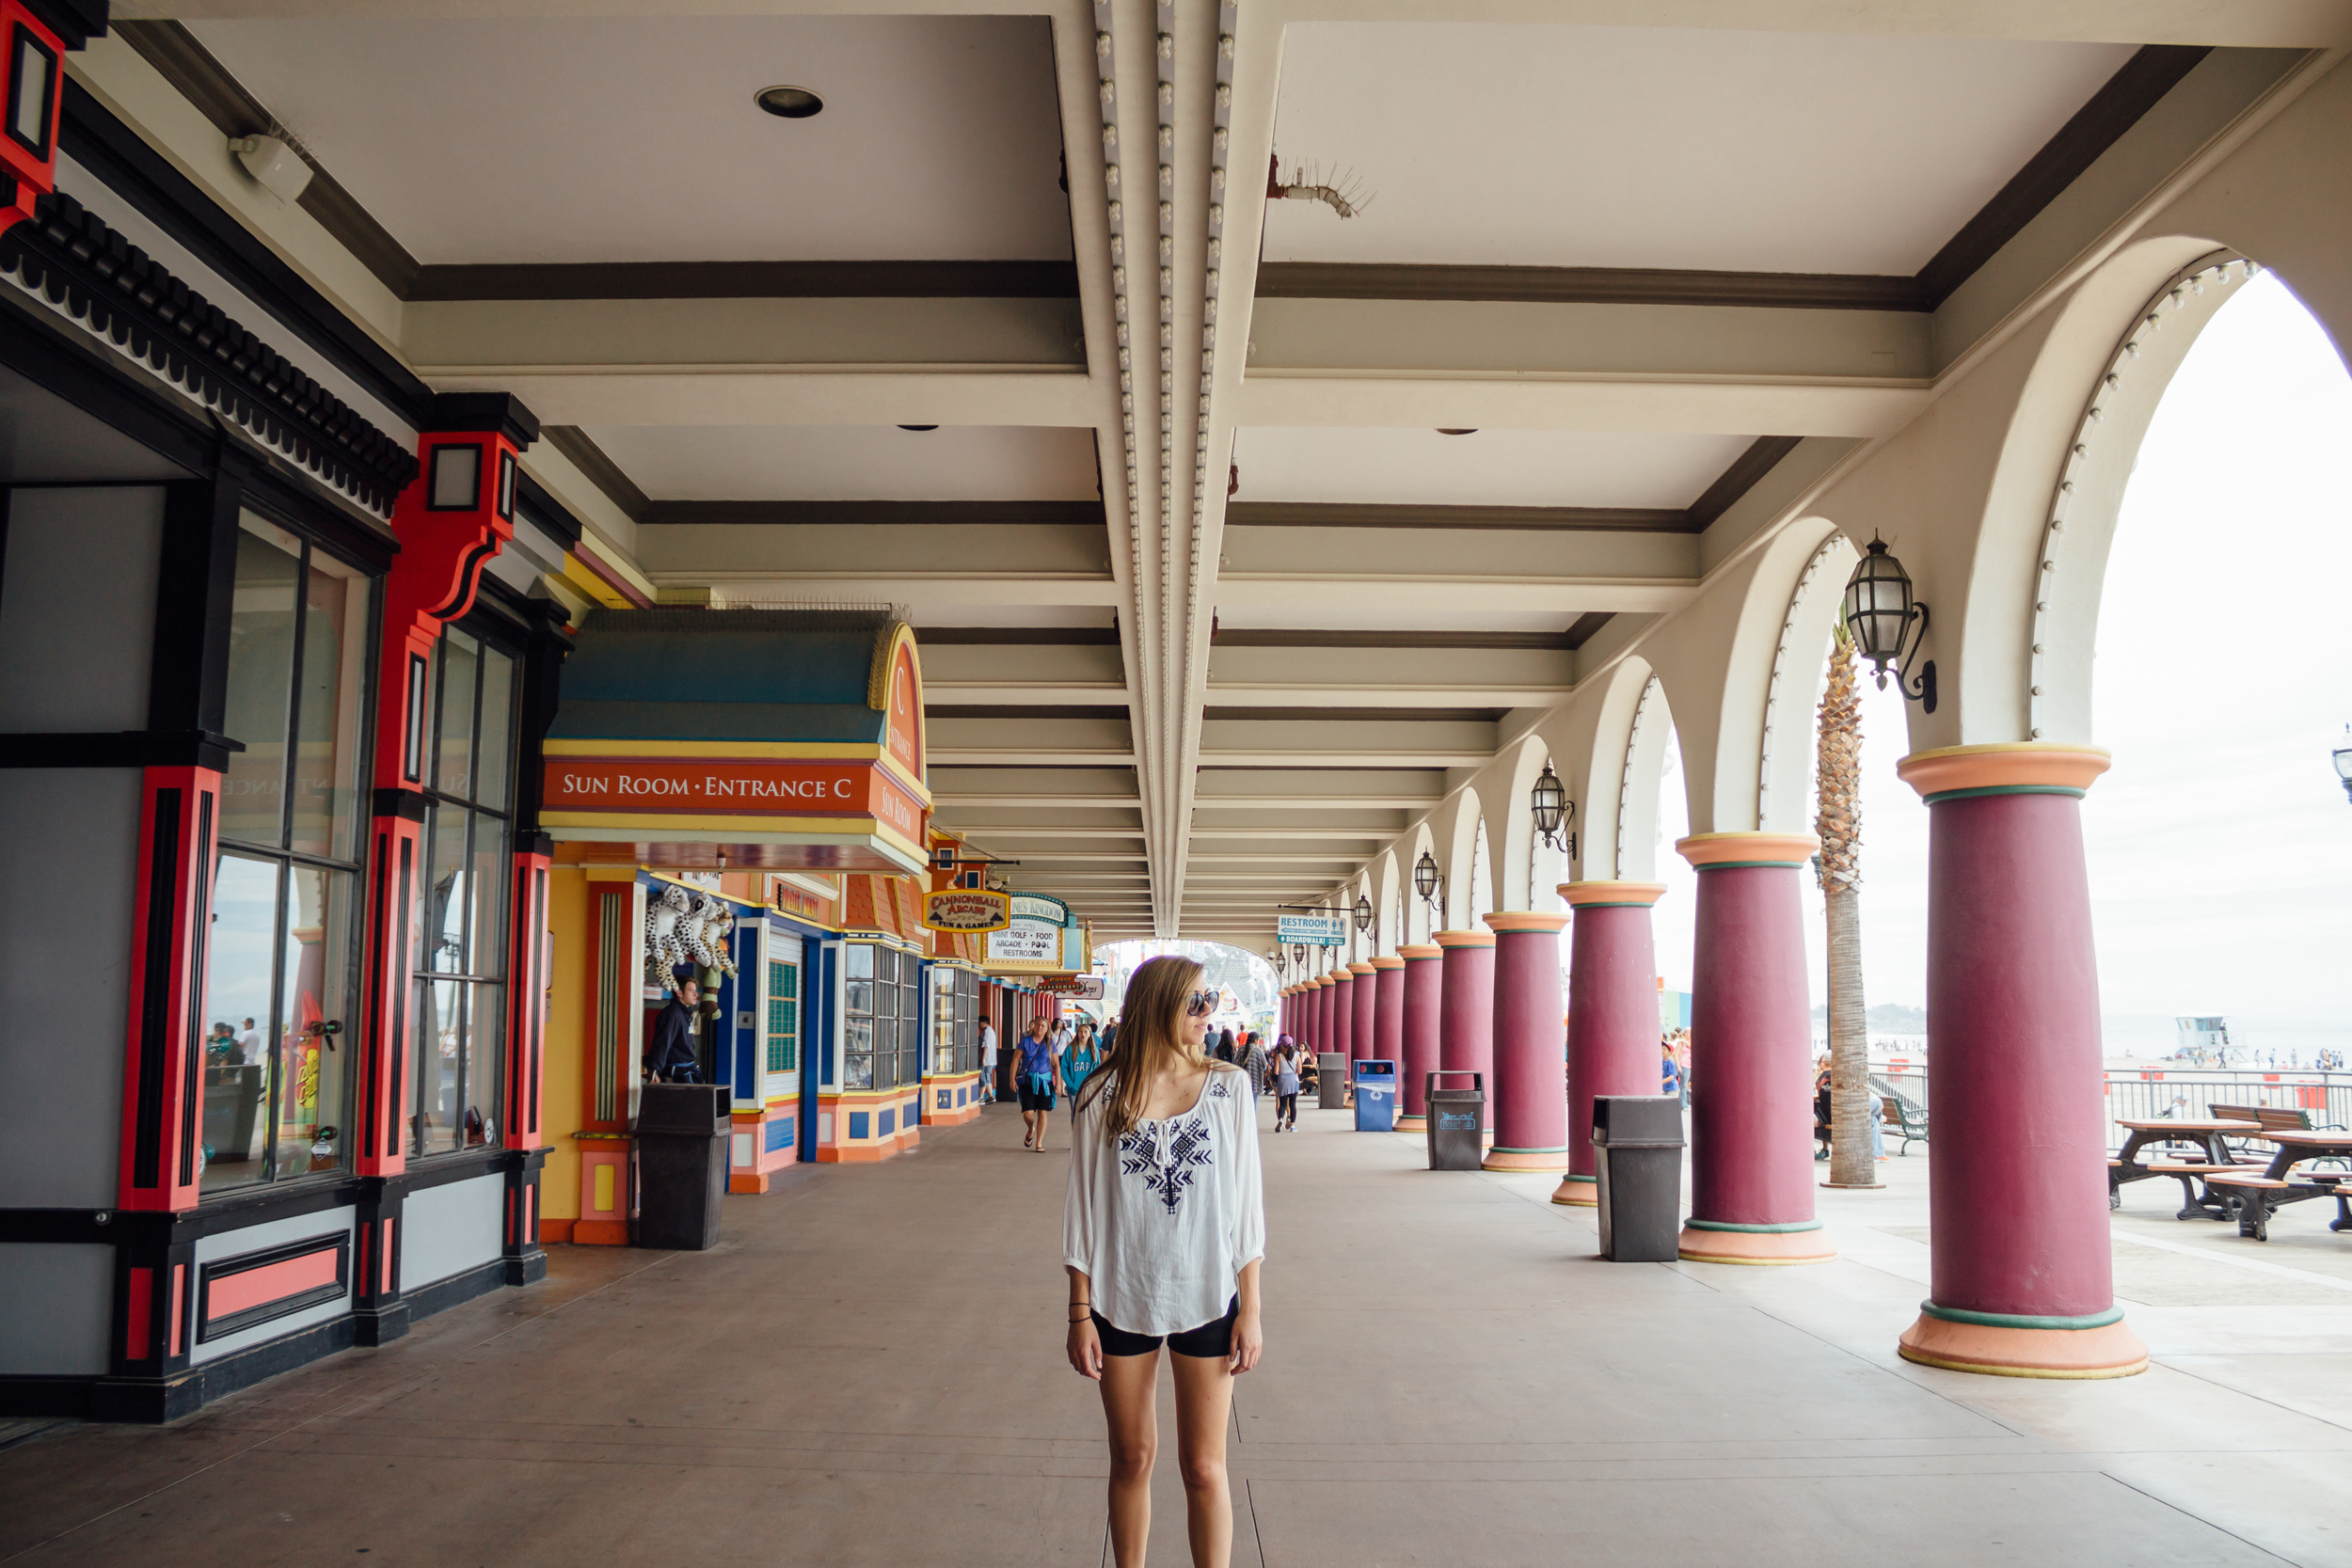 Micaela McLaughlin at the Santa Cruz Boardwalk by Catherine Alyce